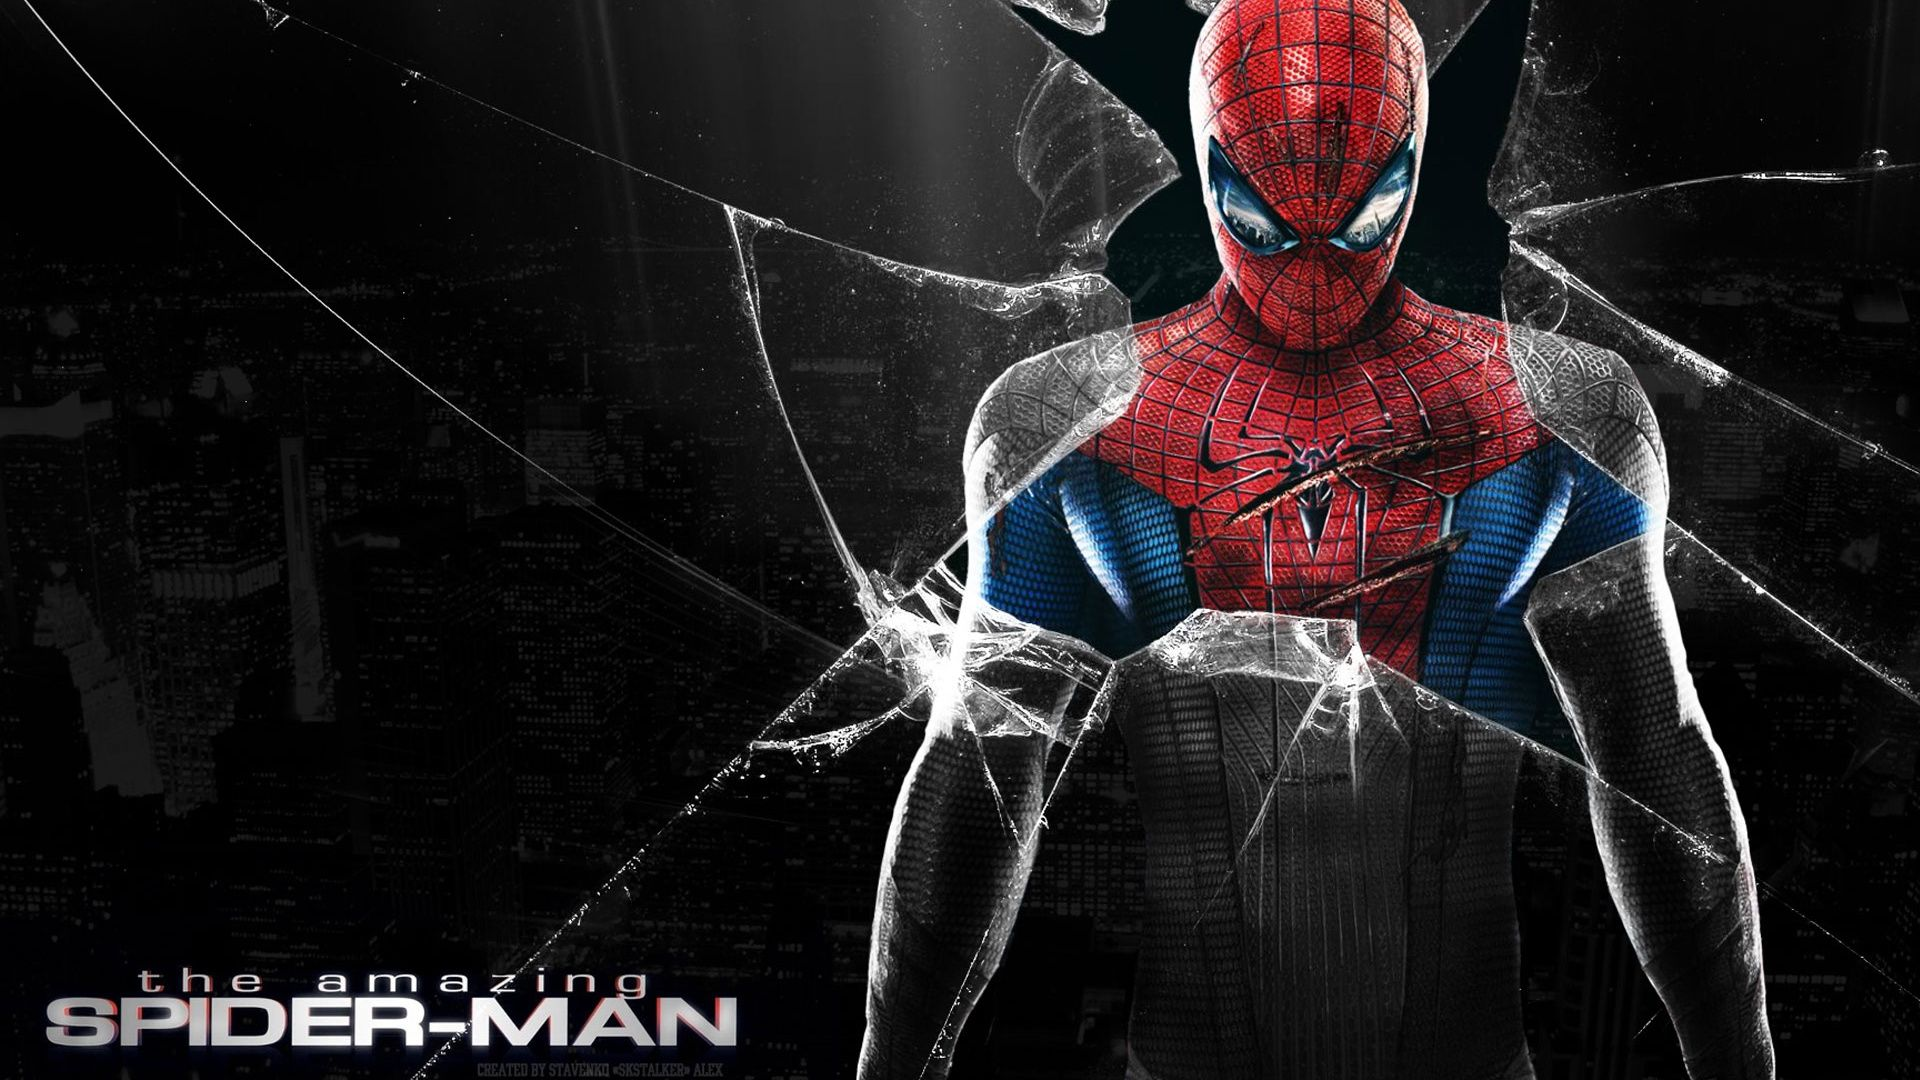 Hd The Amazing Spiderman Cracked Screen Wallpaper Full Size Spiderman Pictures Spiderman Amazing Spiderman